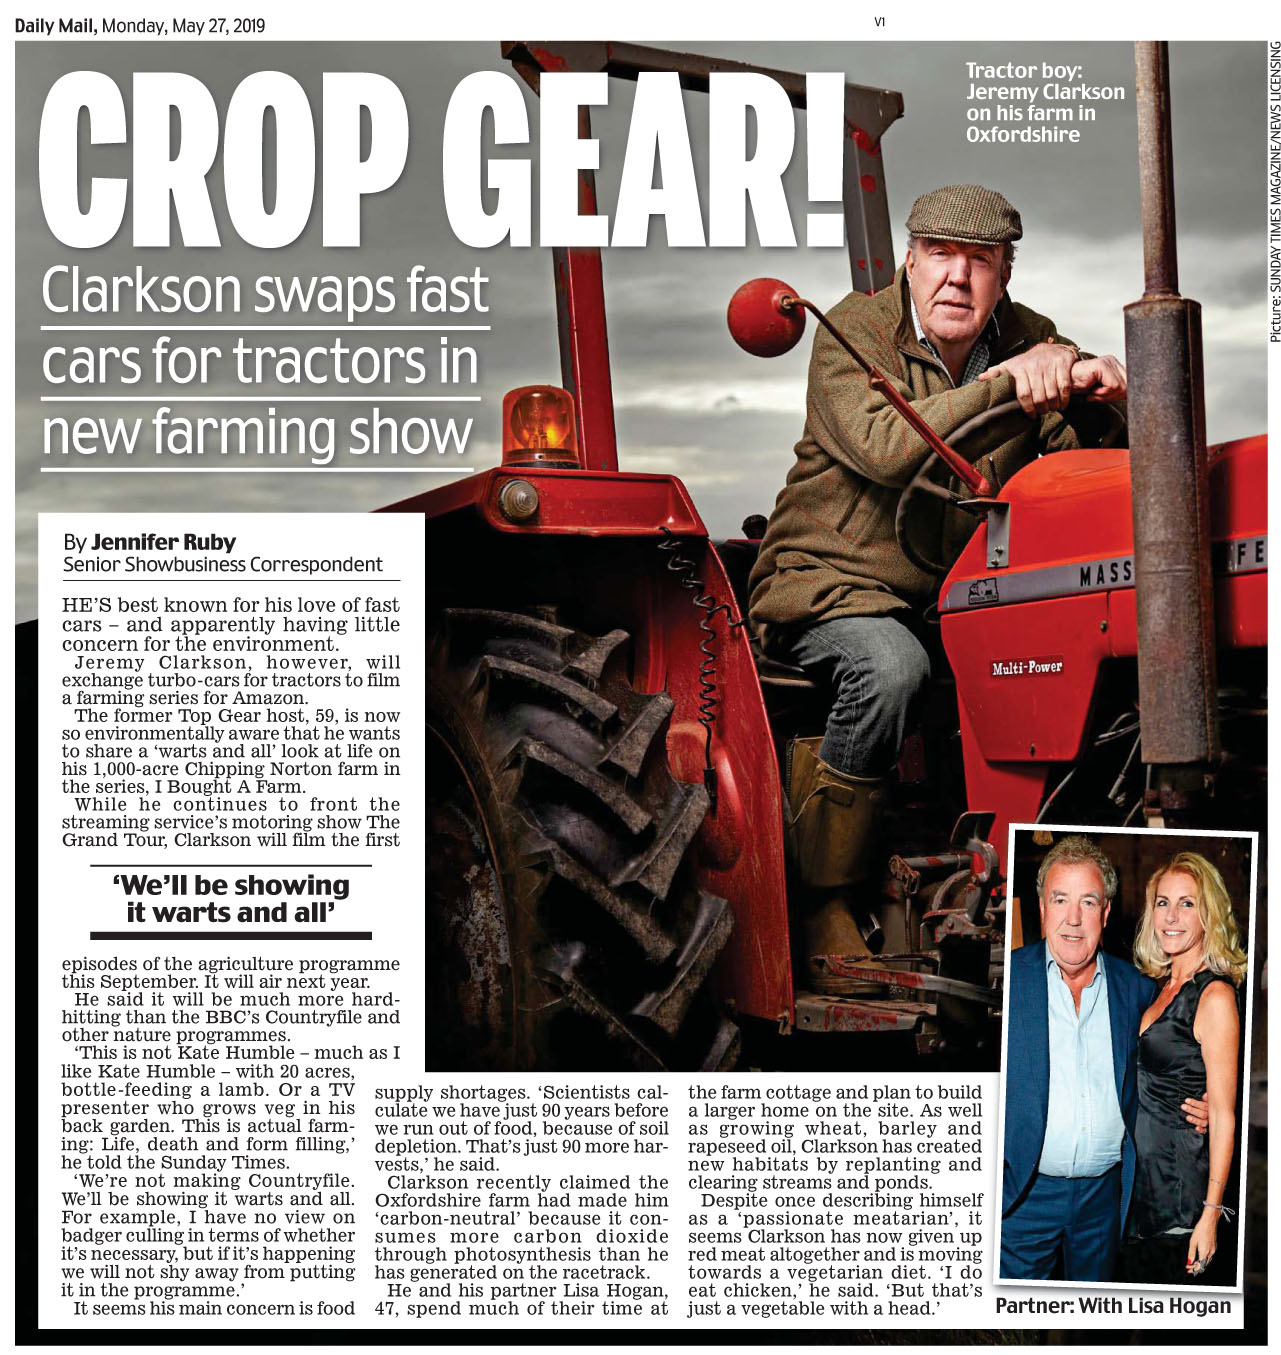 Daily Mail May 27 2019 Top Gear.jpg